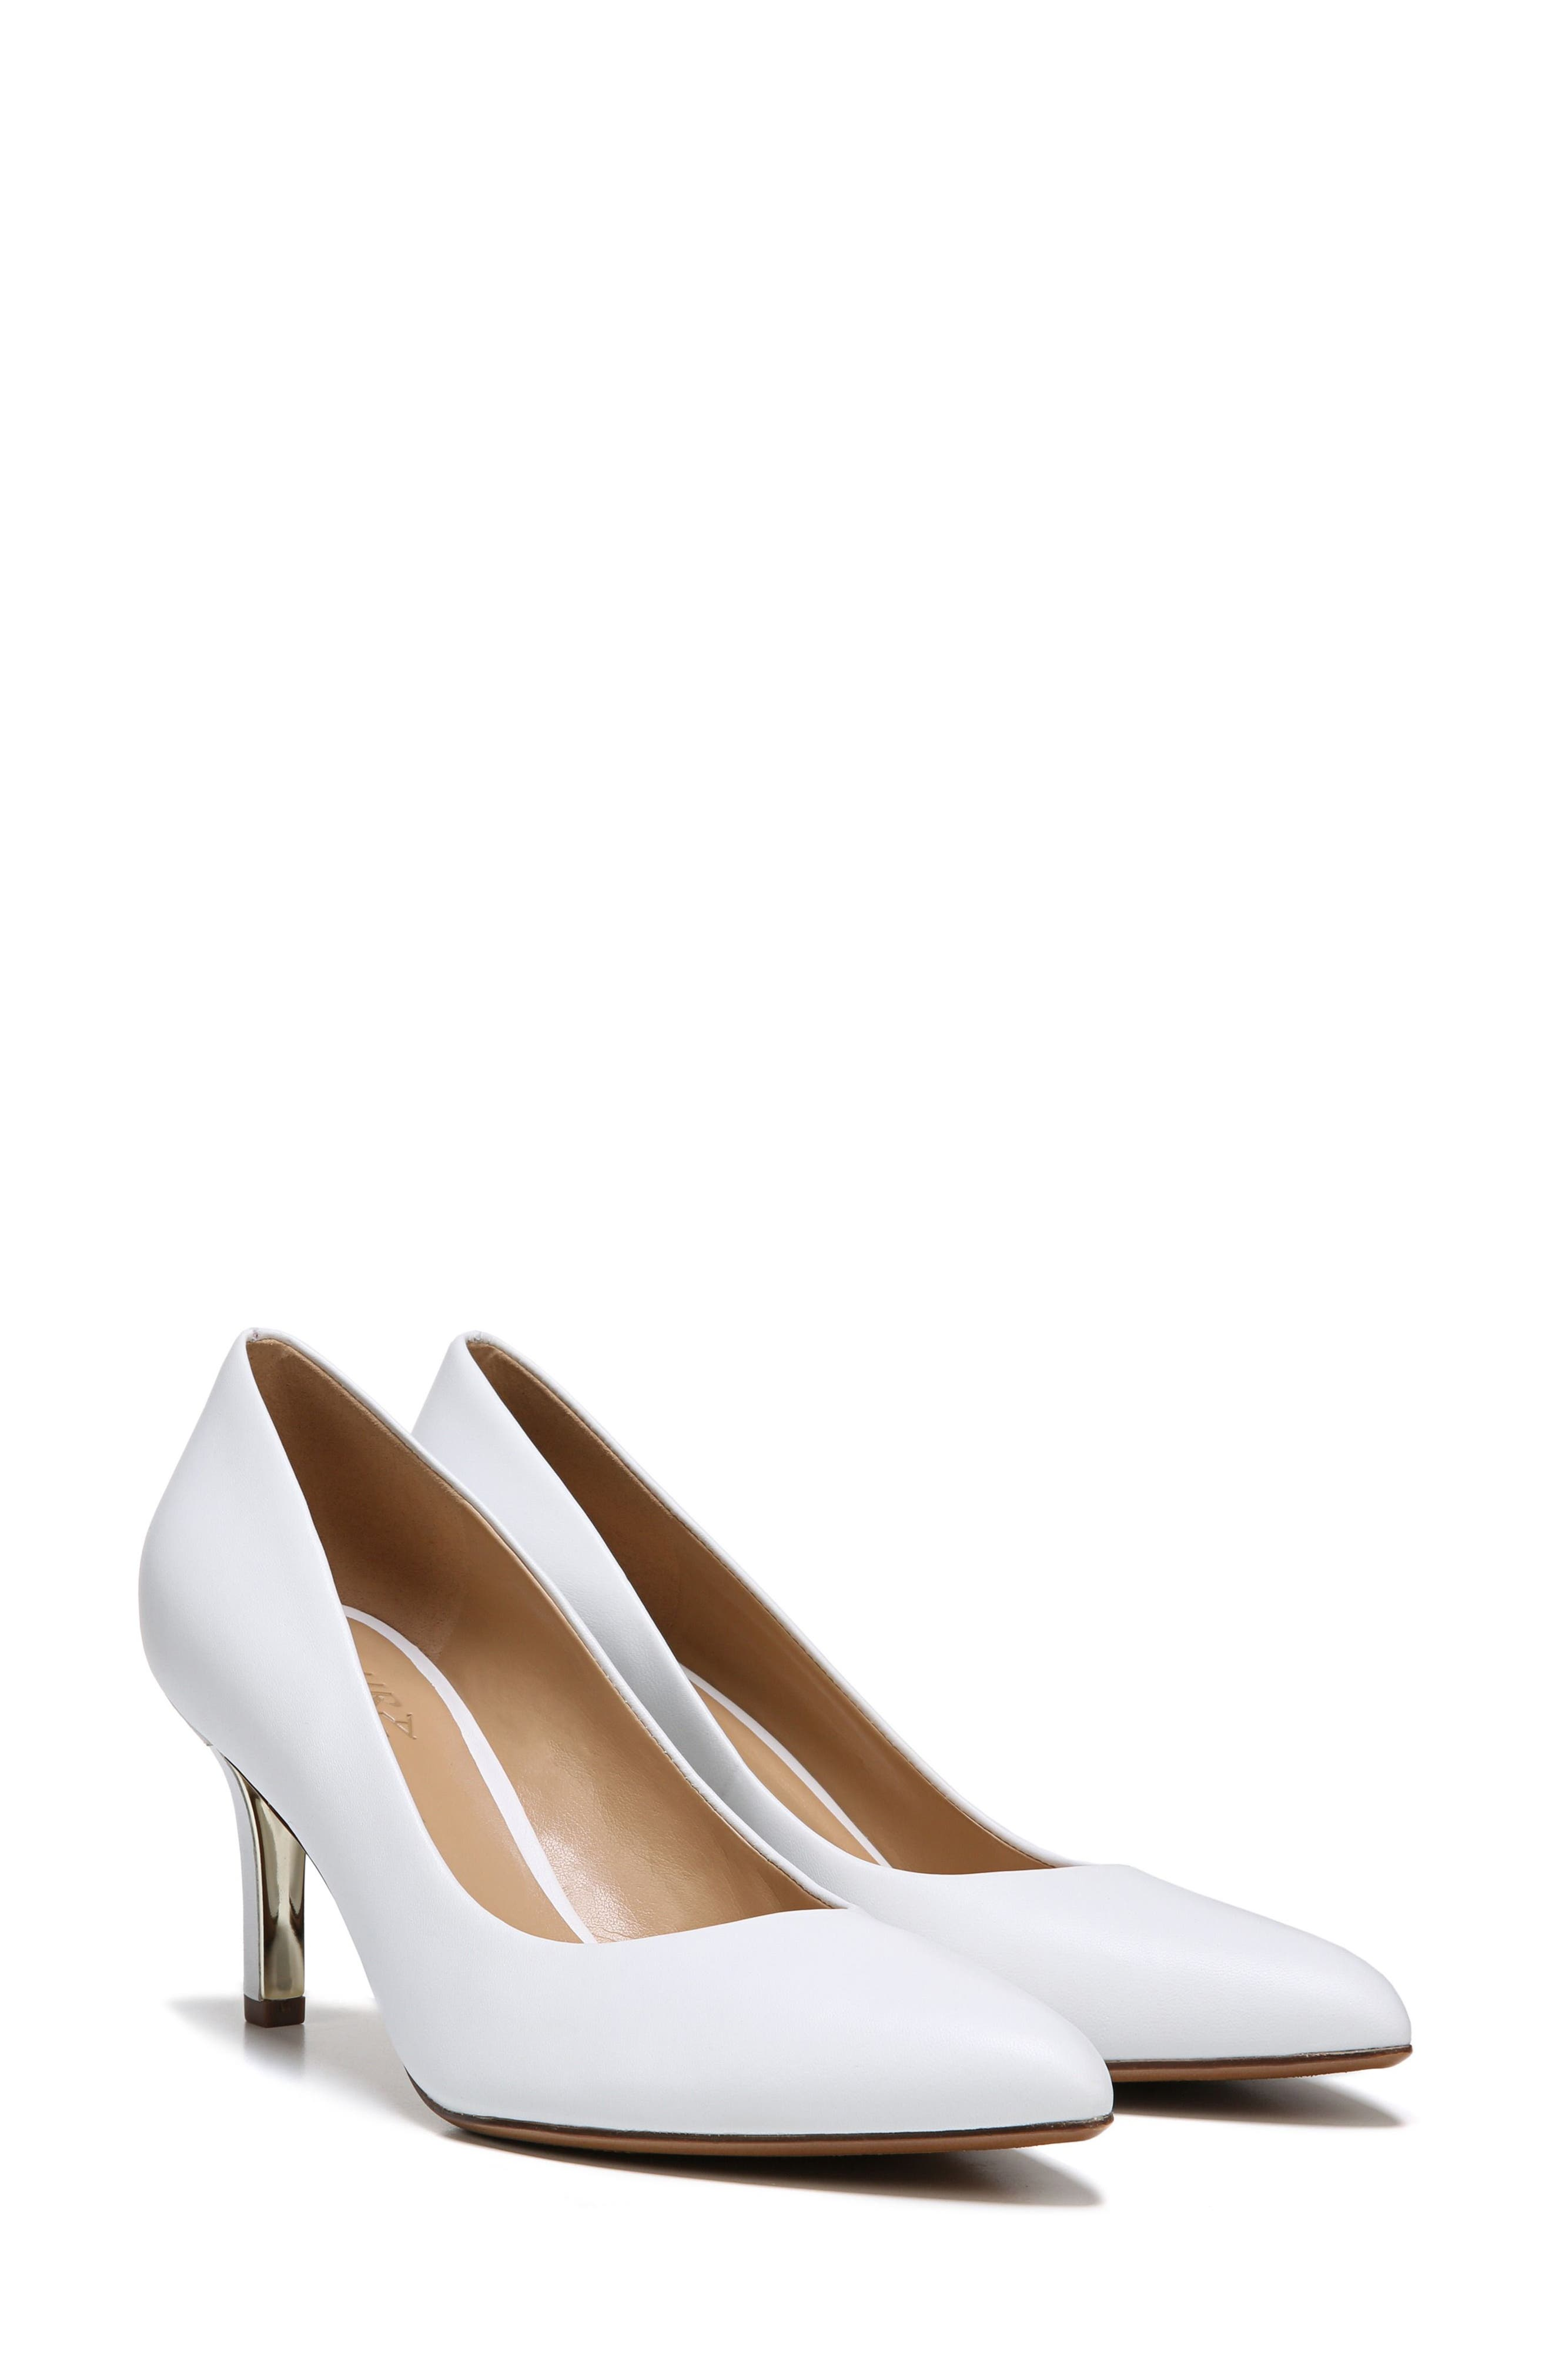 NATURALIZER, Natalie Pointy Toe Pump, Alternate thumbnail 8, color, WHITE LEATHER